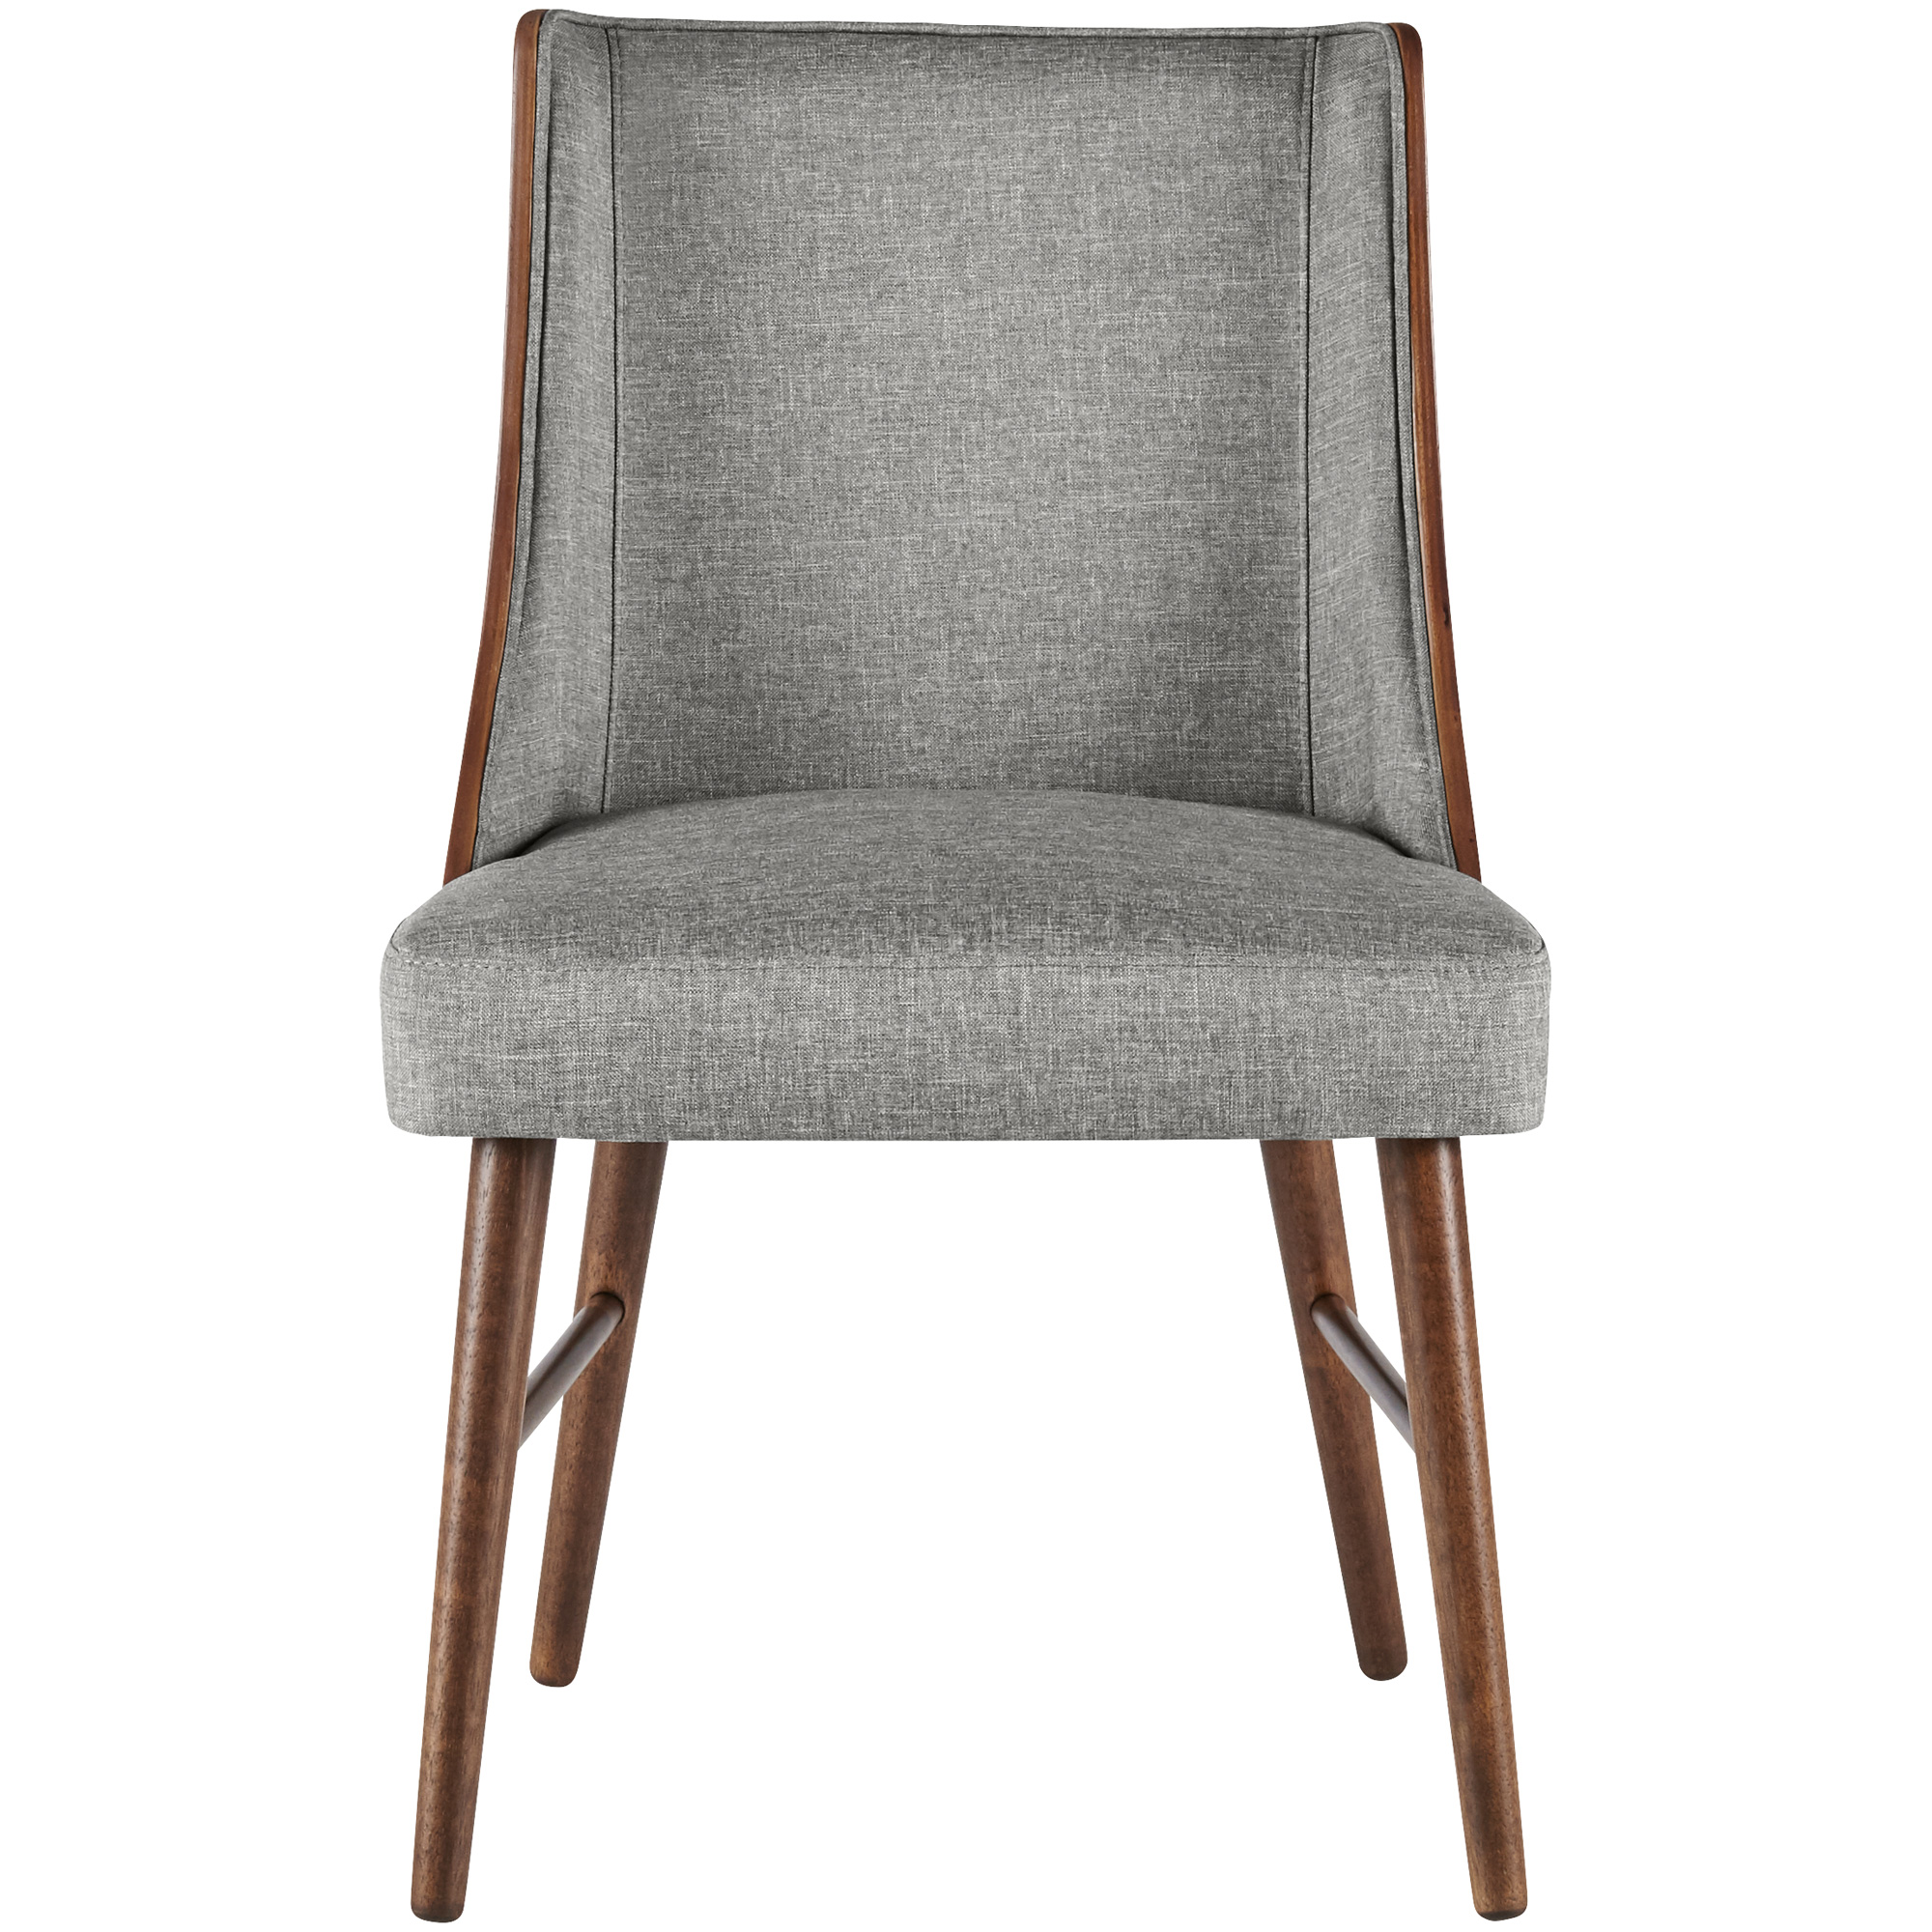 Lifestyle Enterprise | Filmore Walnut Side Chair